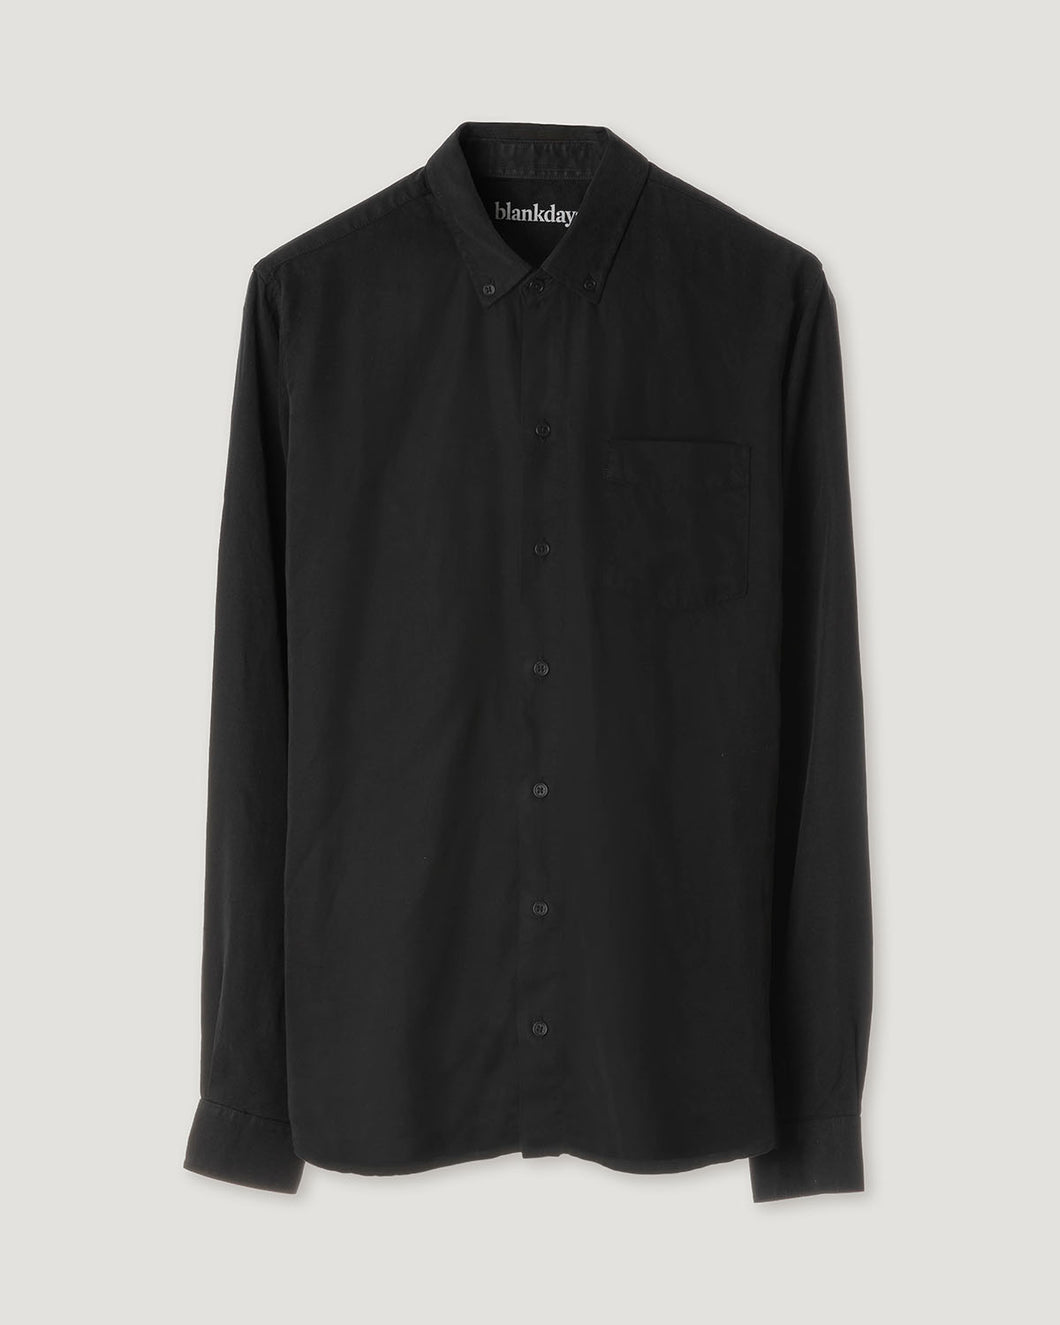 TENCEL SHIRT BLACK-shirts-Blankdays